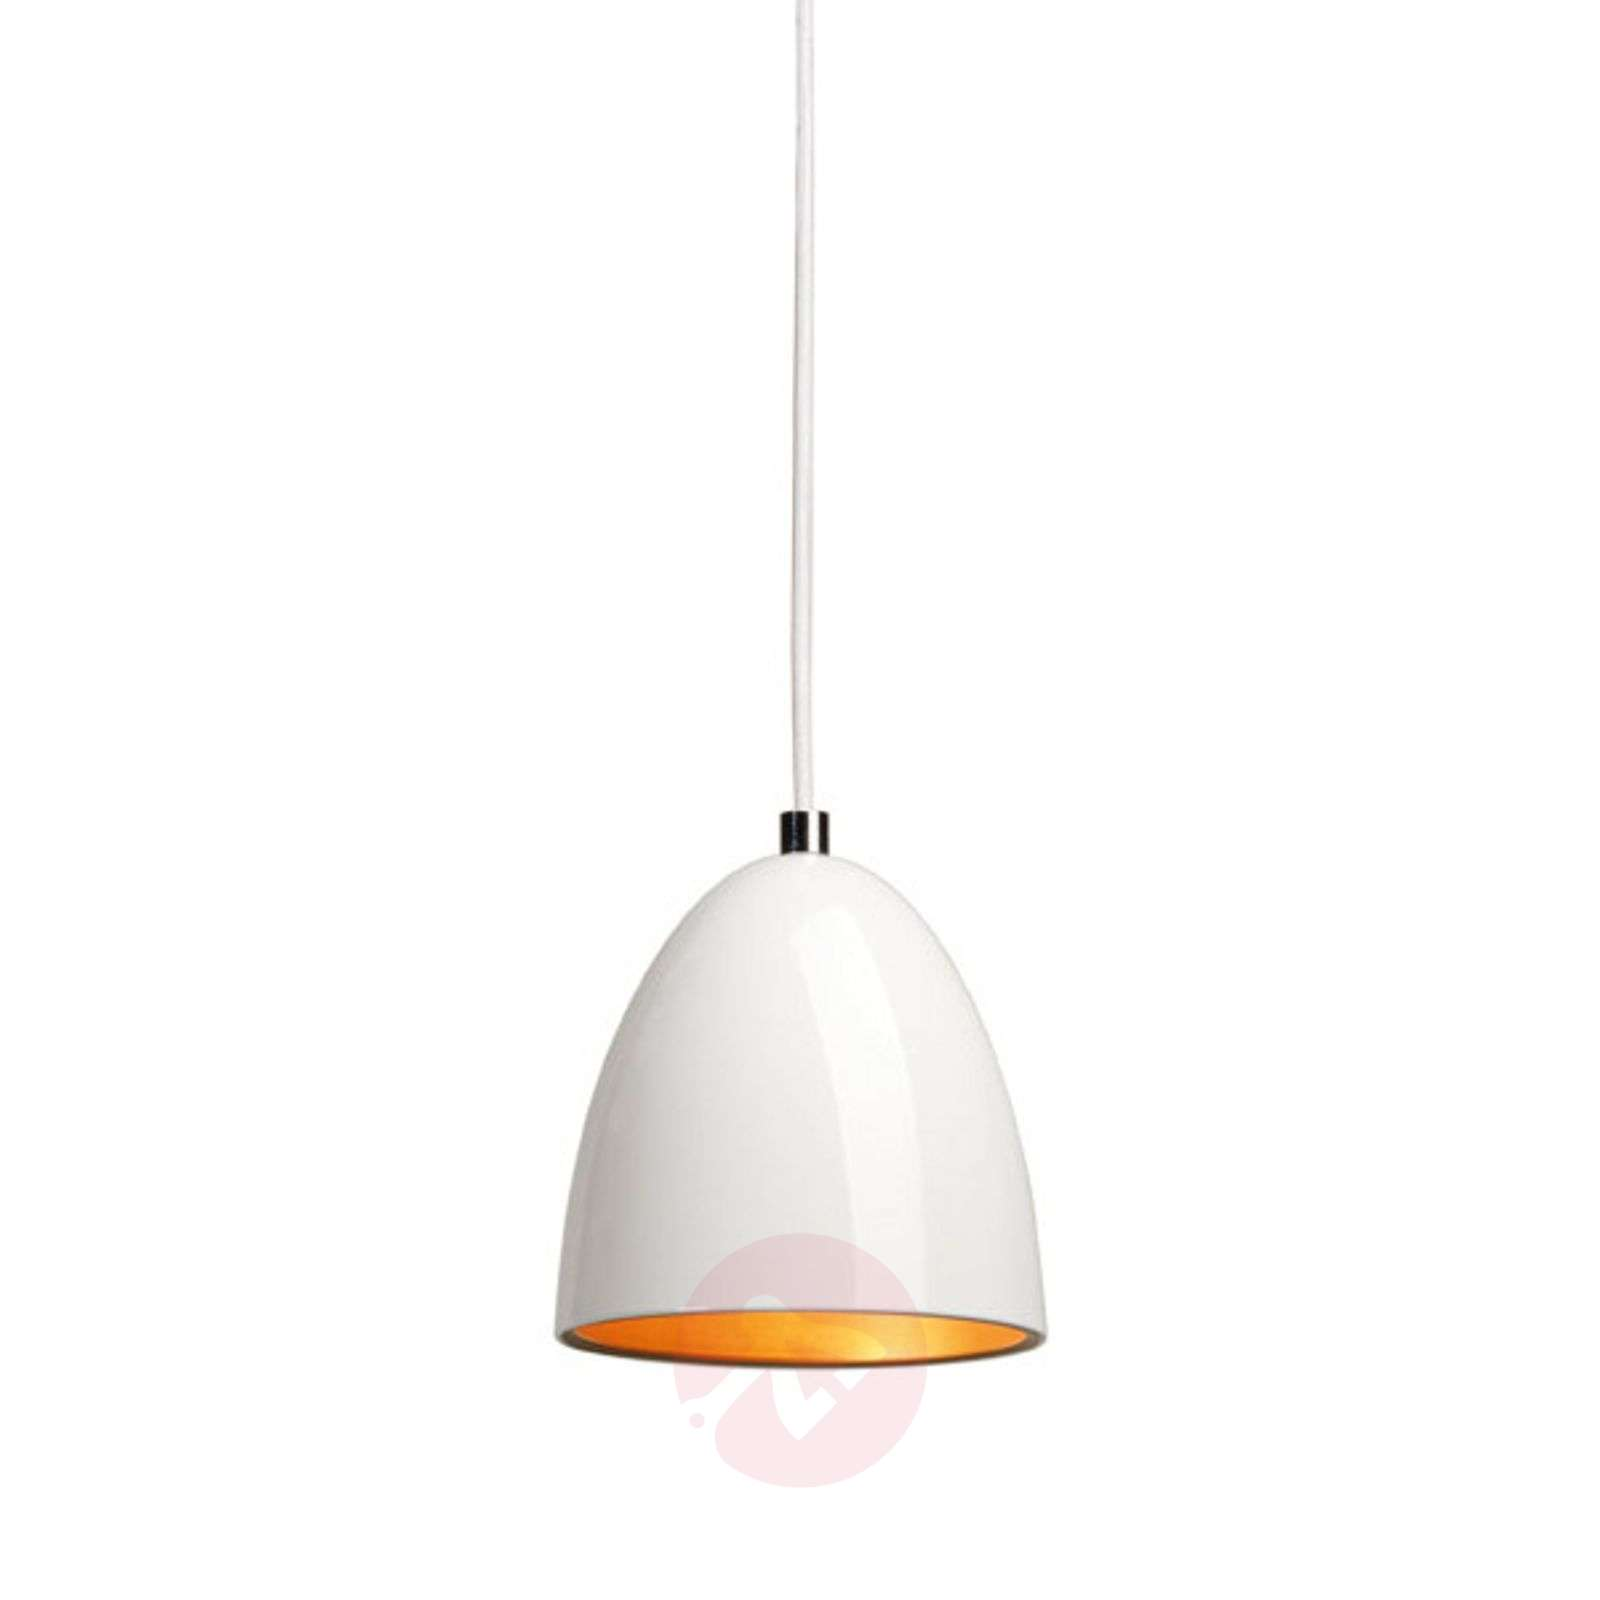 jakobsson price by white for at sale pamono cone piece pendant lamp agne per hans